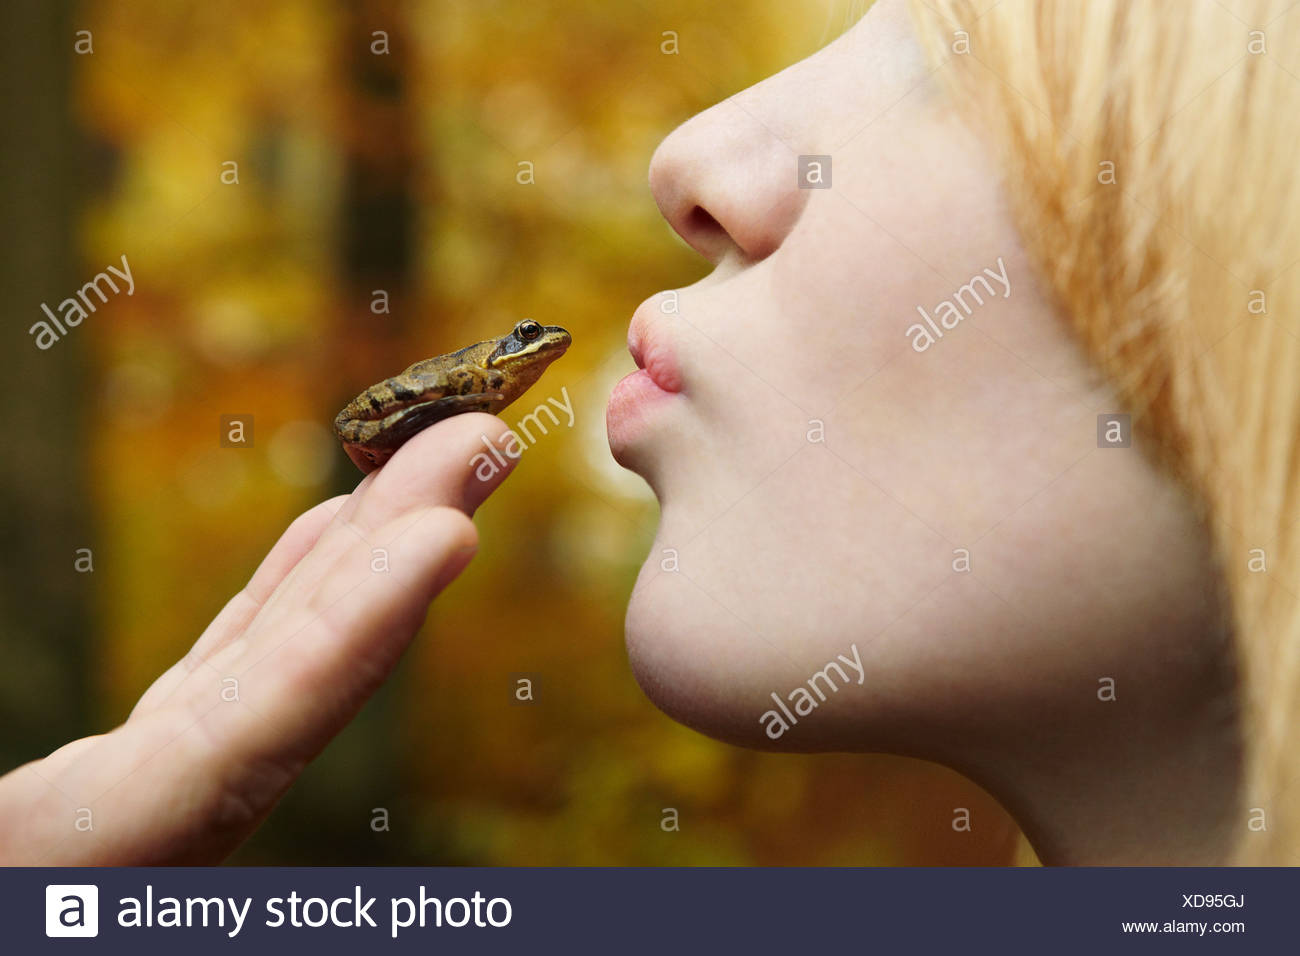 Girl kissing tiny frog in forest - Stock Image